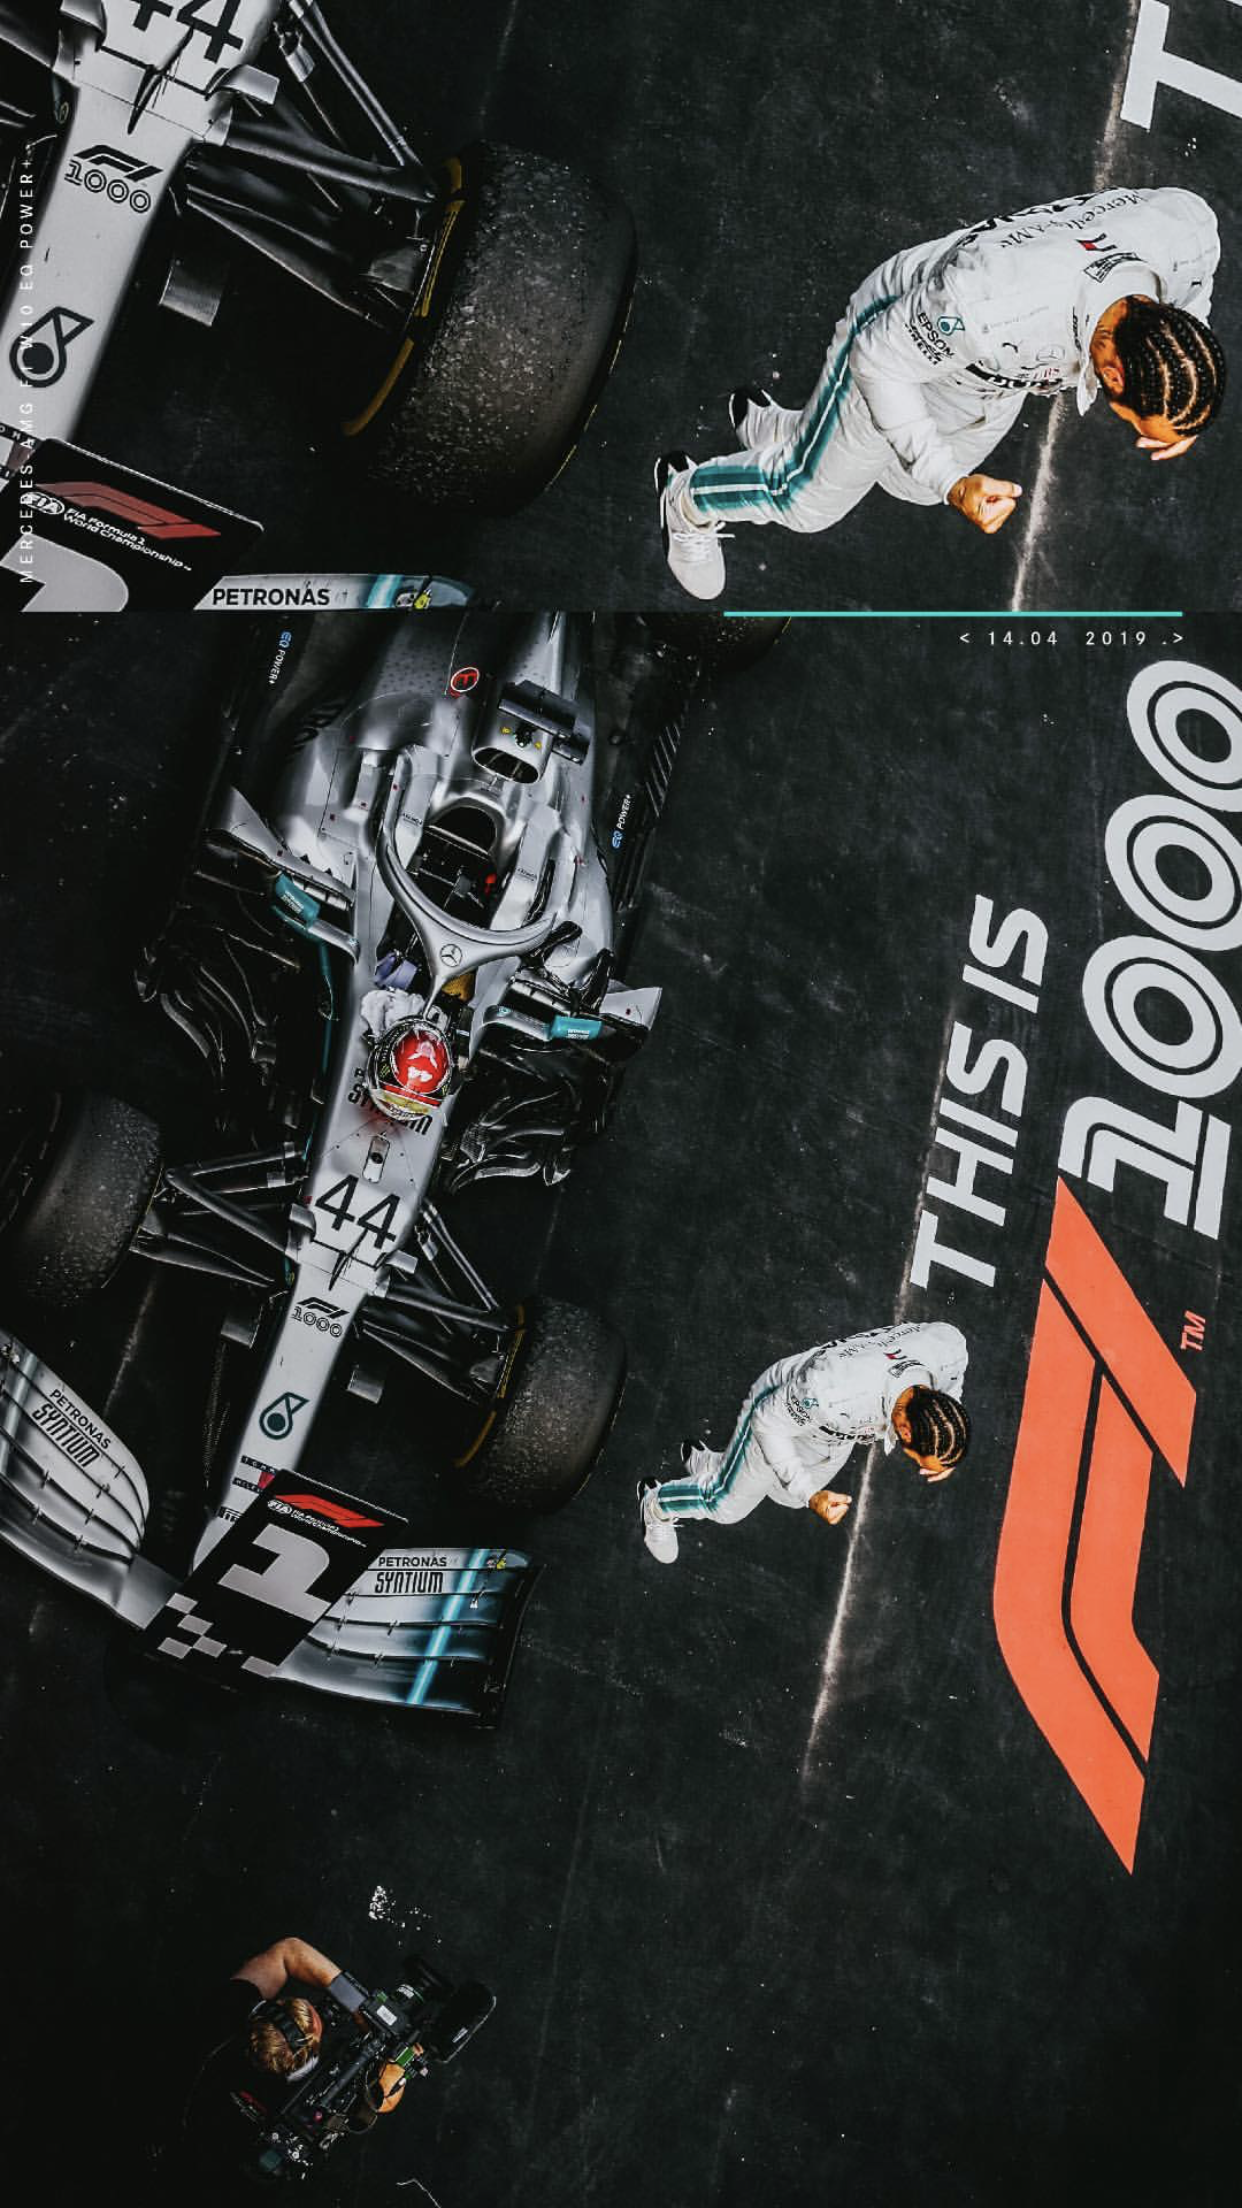 Pin By Walter Cheung On Formula 1 Lewis Hamilton Formula 1 Lewis Hamilton Wins Lewis Hamilton